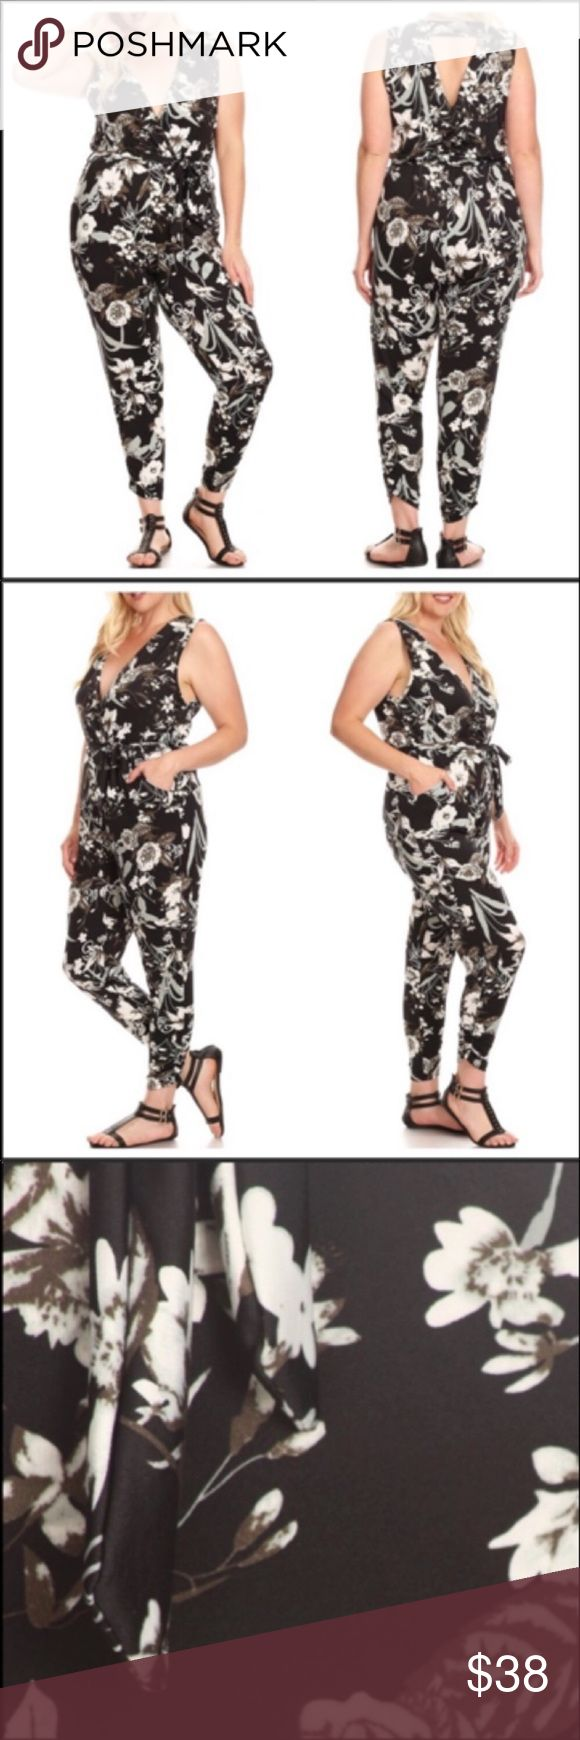 🎈Plus Size Jumpsuit🎈 Very trendy plus size jumpsuit. Black, gray and white…